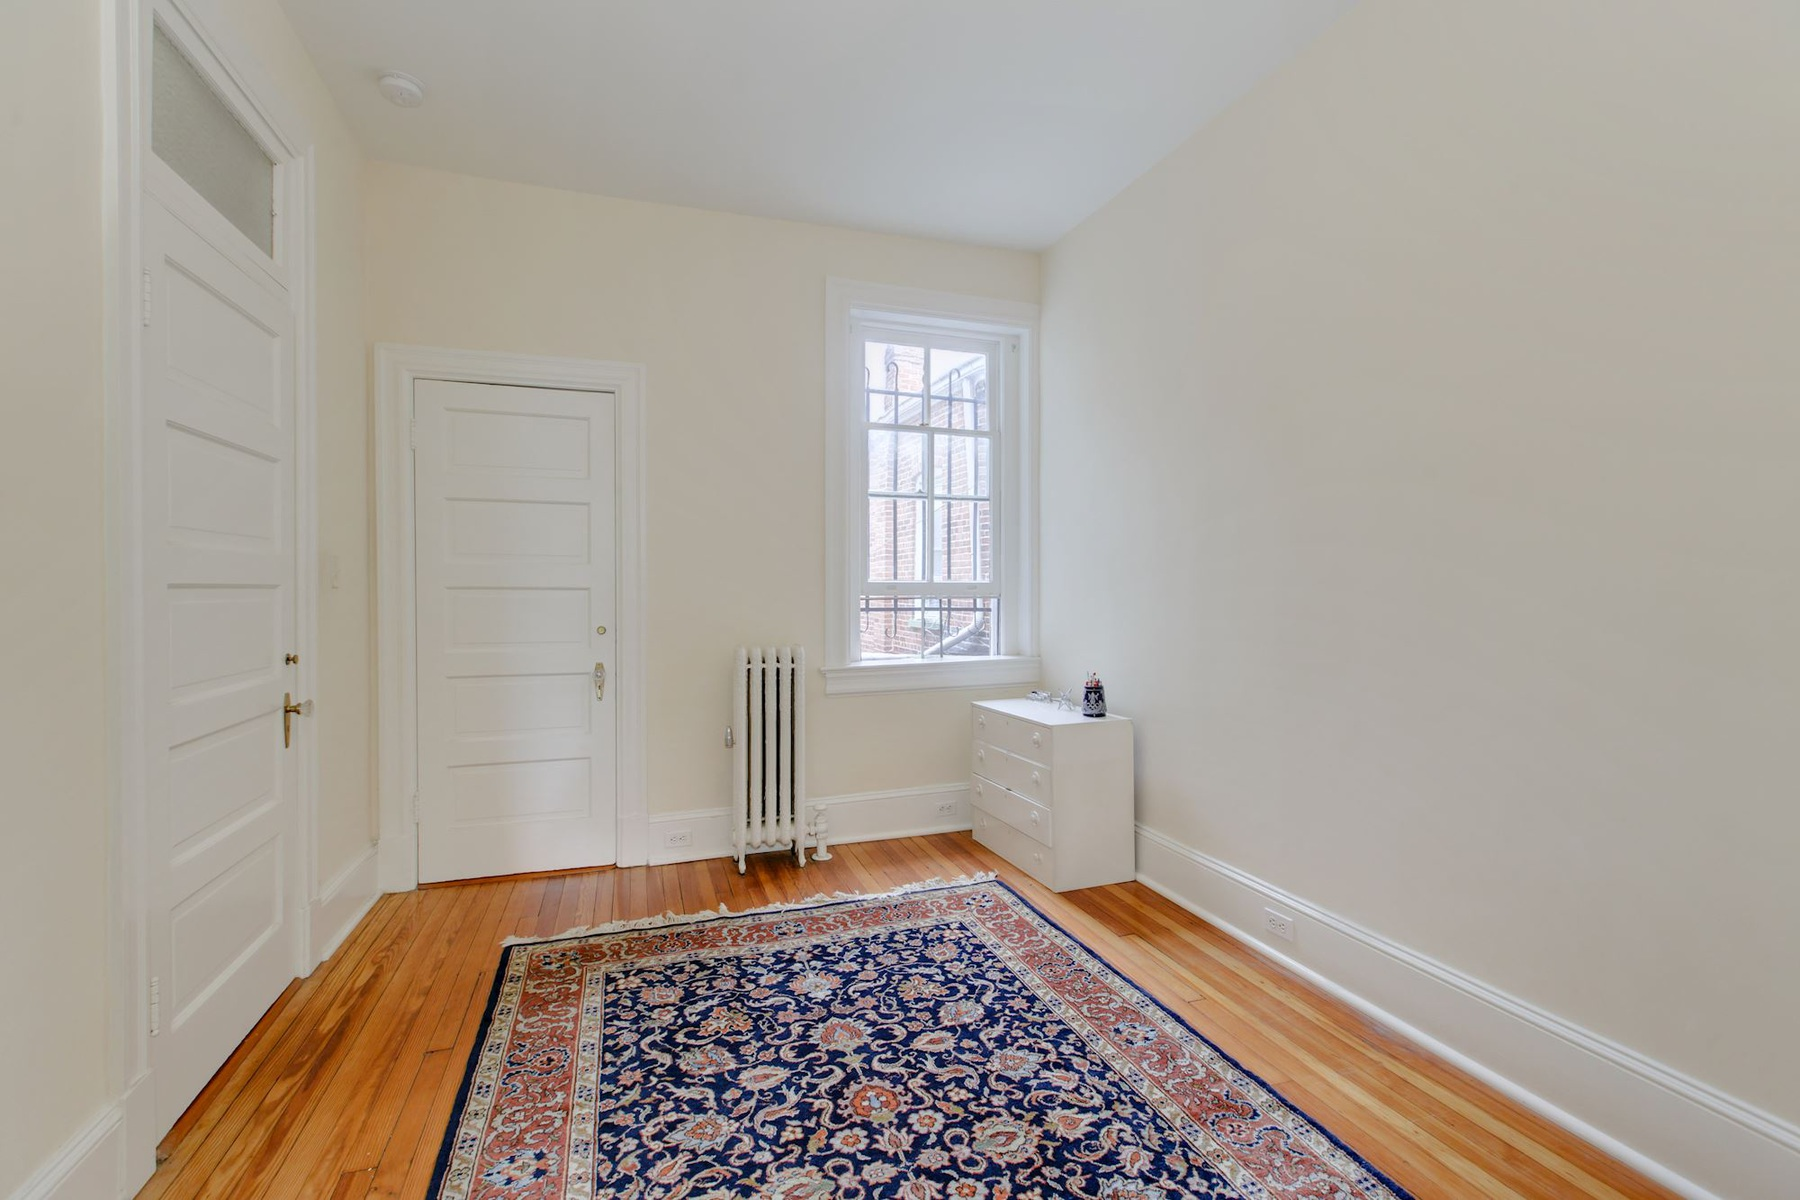 Additional photo for property listing at 1915 S Street Nw, Washington  Washington, District De Columbia 20009 États-Unis